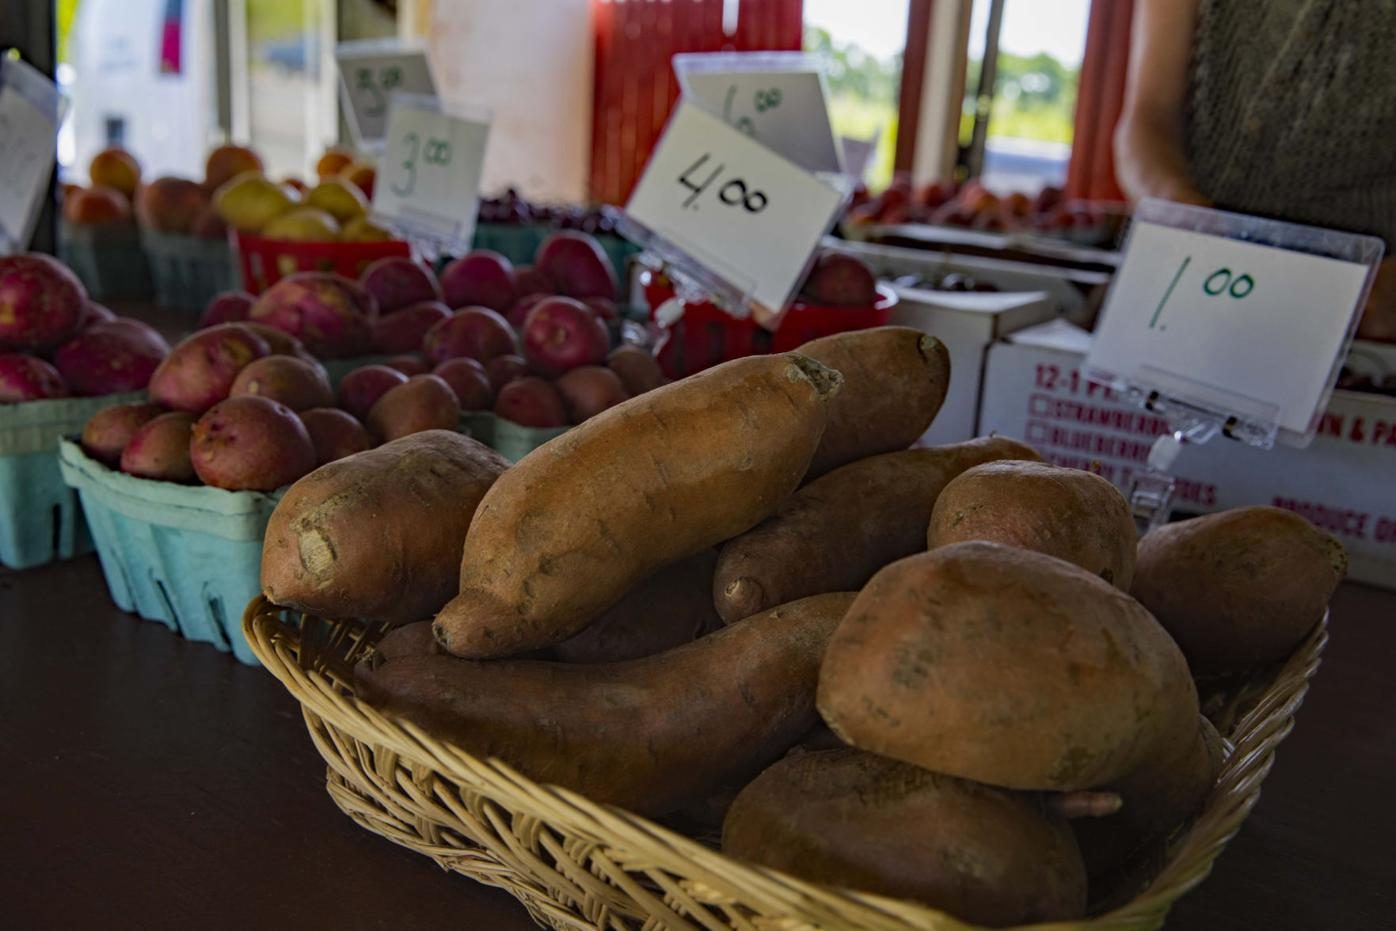 Root vegetables are among the offerings at the farm stand.